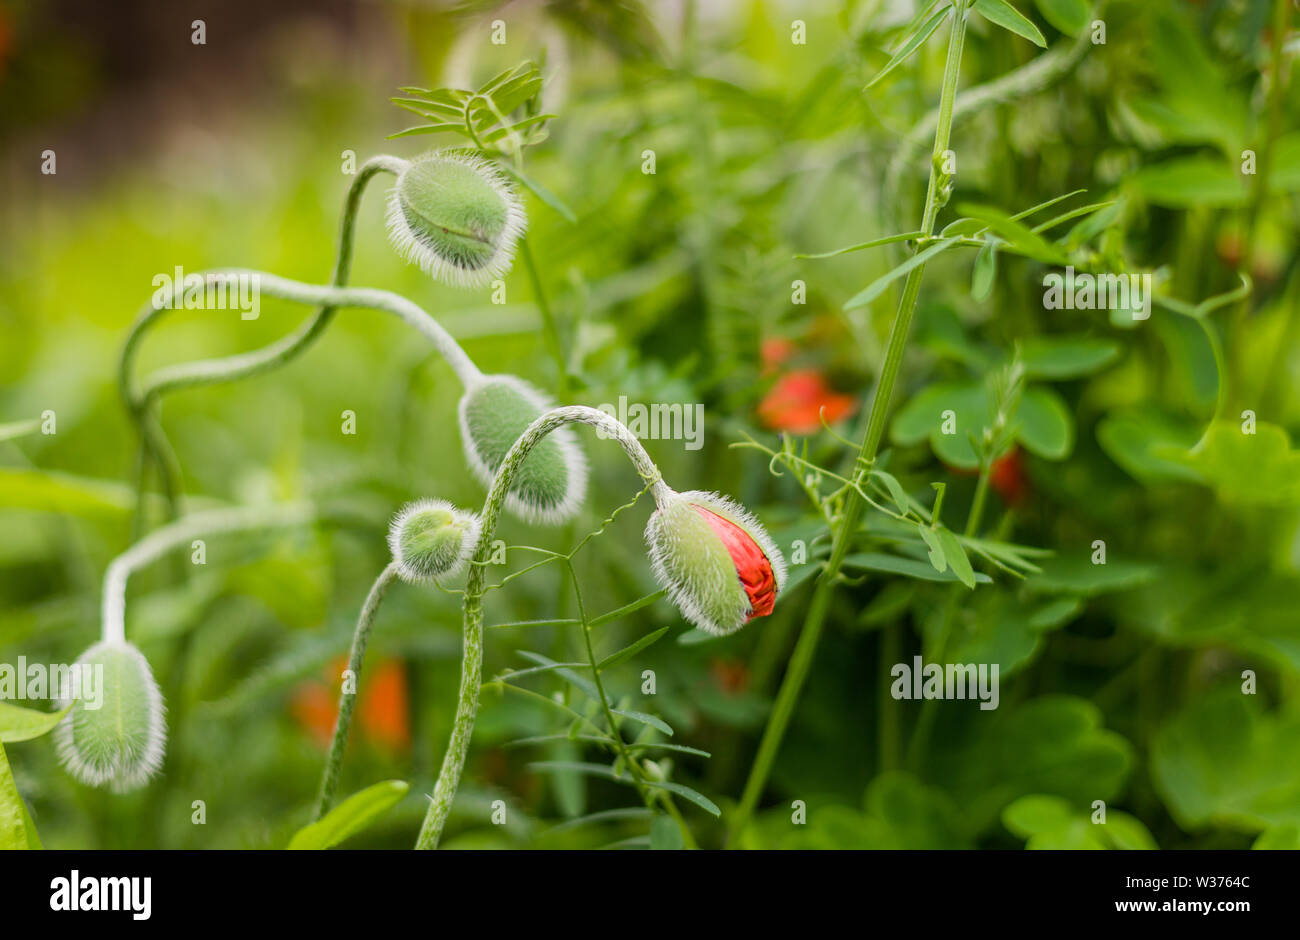 Close up of delicate poppy buds and green leaves - Stock Image